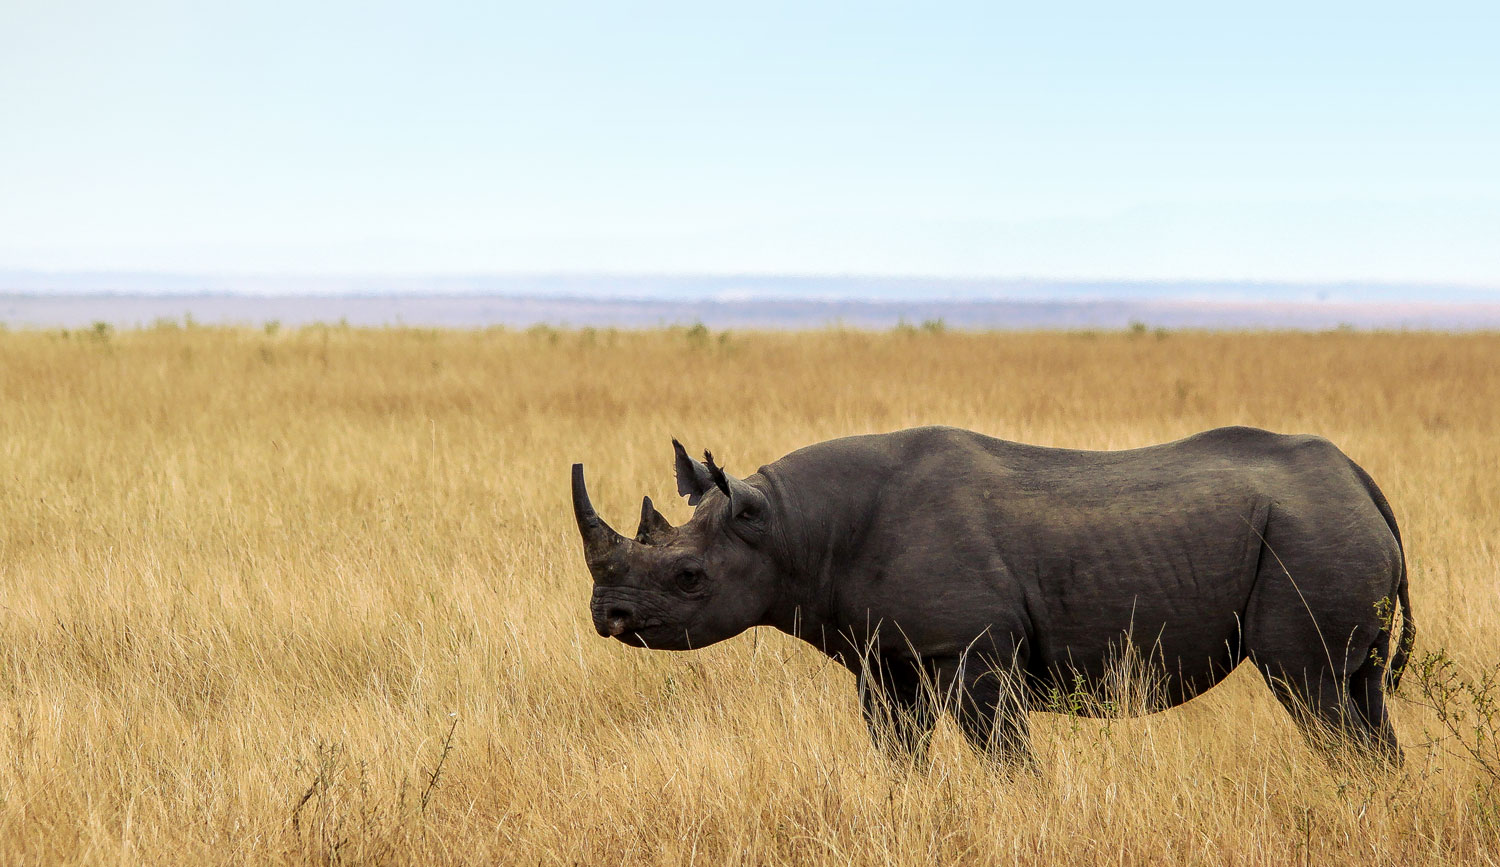 Rare black rhino spotted on Tanzania safari